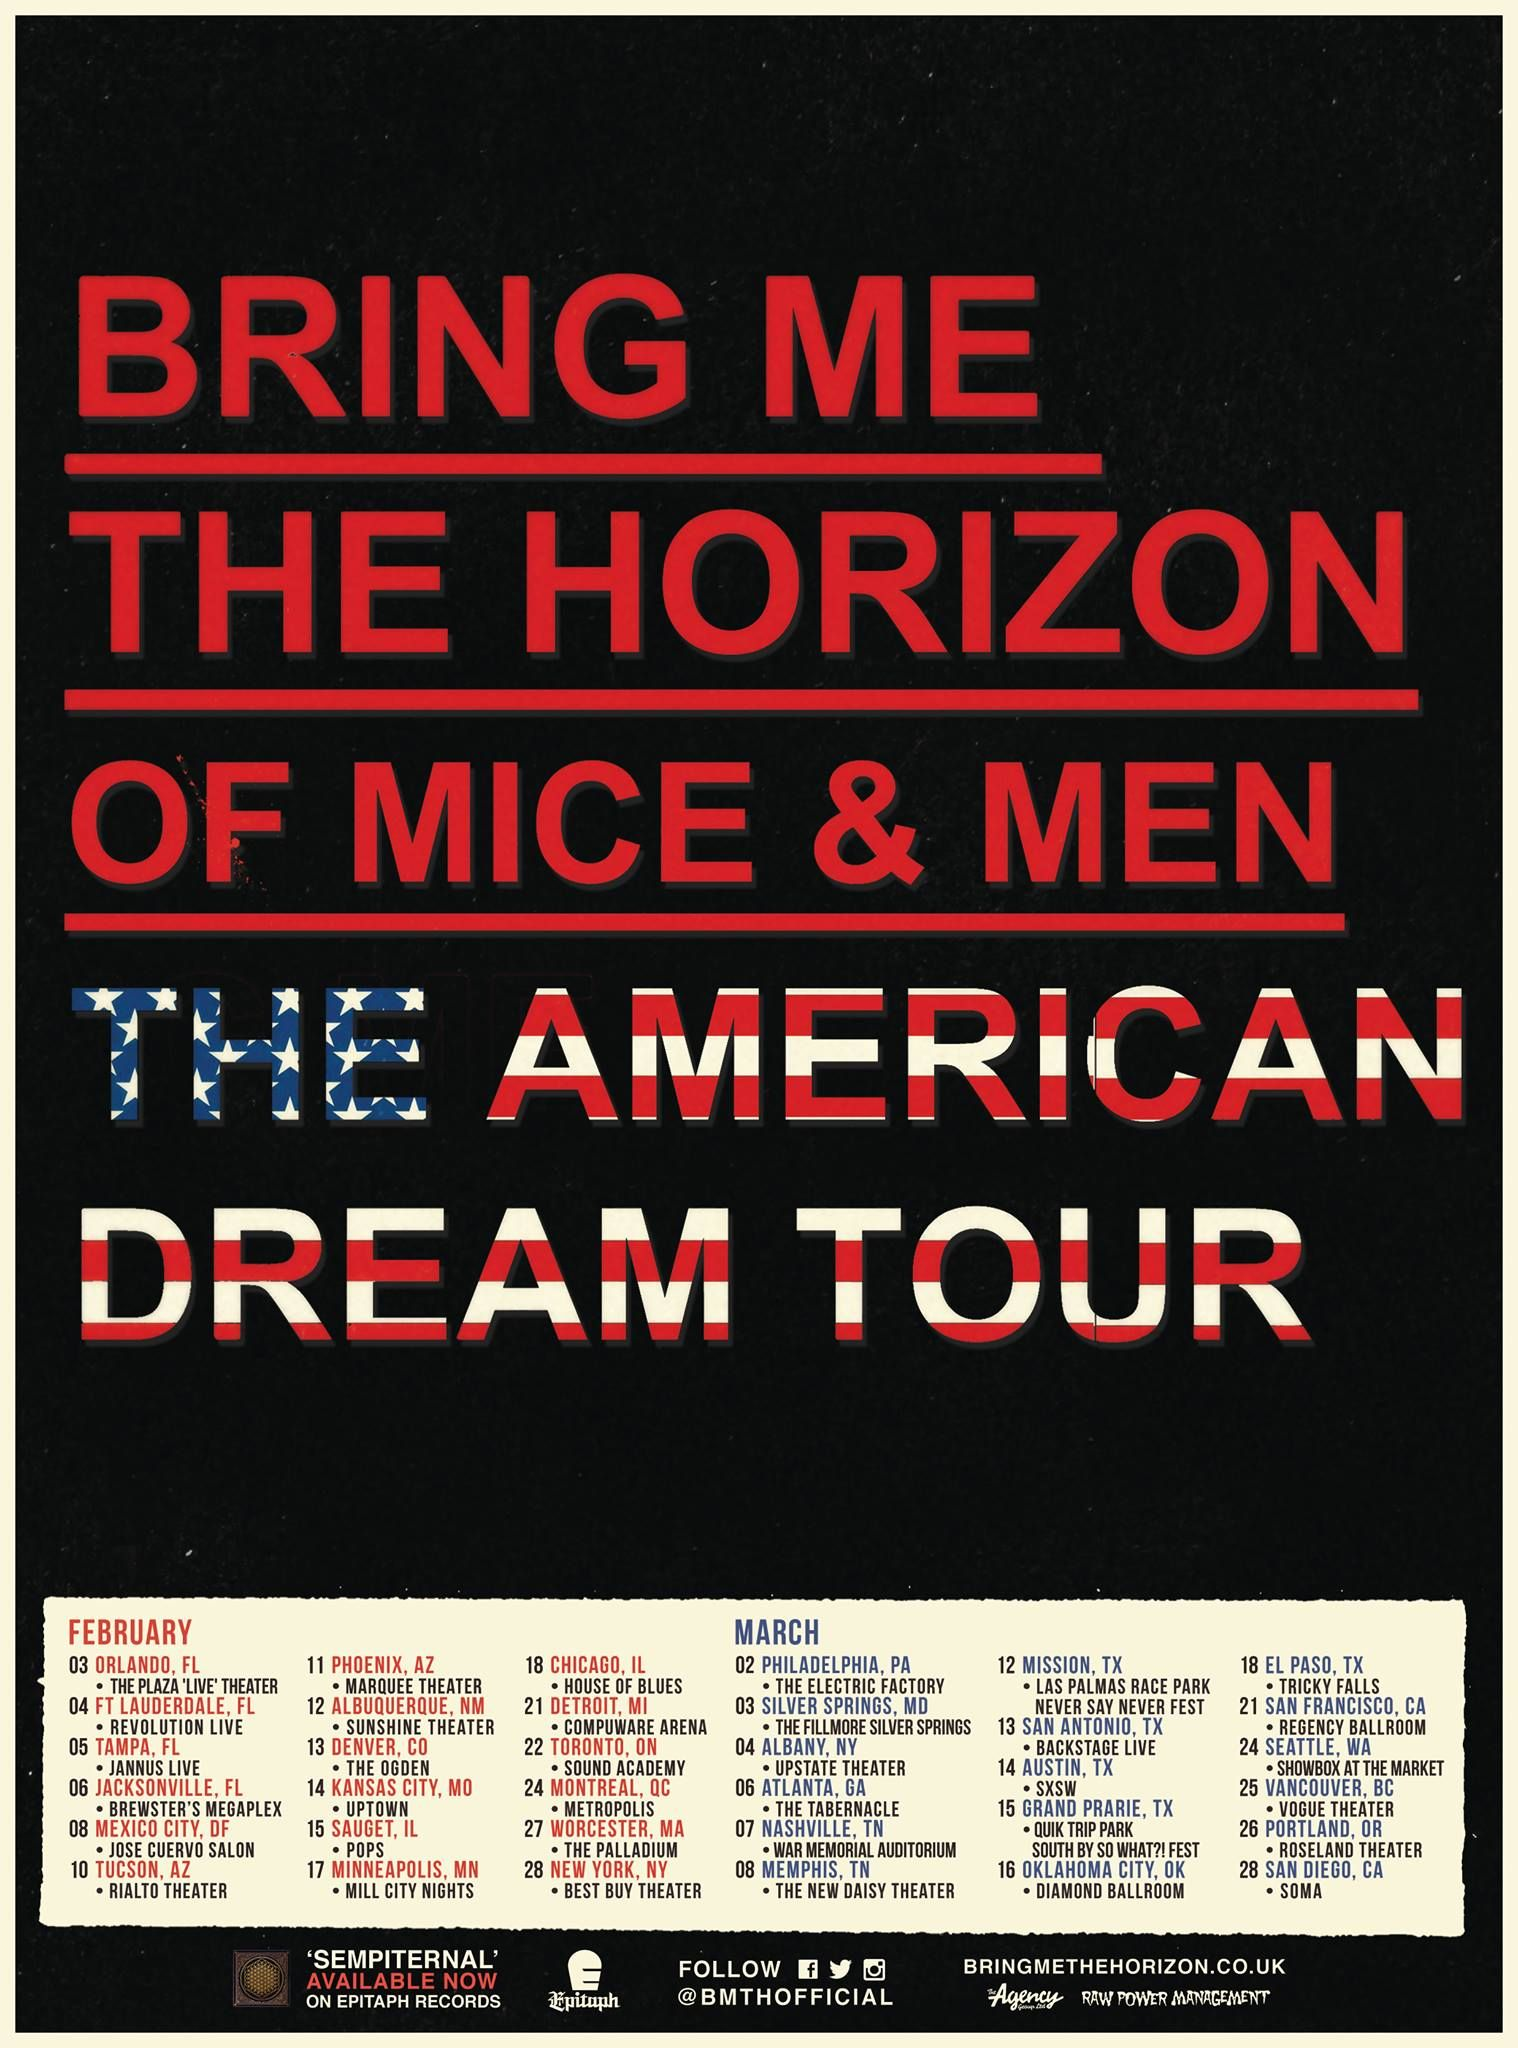 Bring Me The Horizon Of Mice And Men The American Dream Tour Jpg 1 518 2 048 Pixels Bring Me The Horizon Of Mice And Men Bring It On